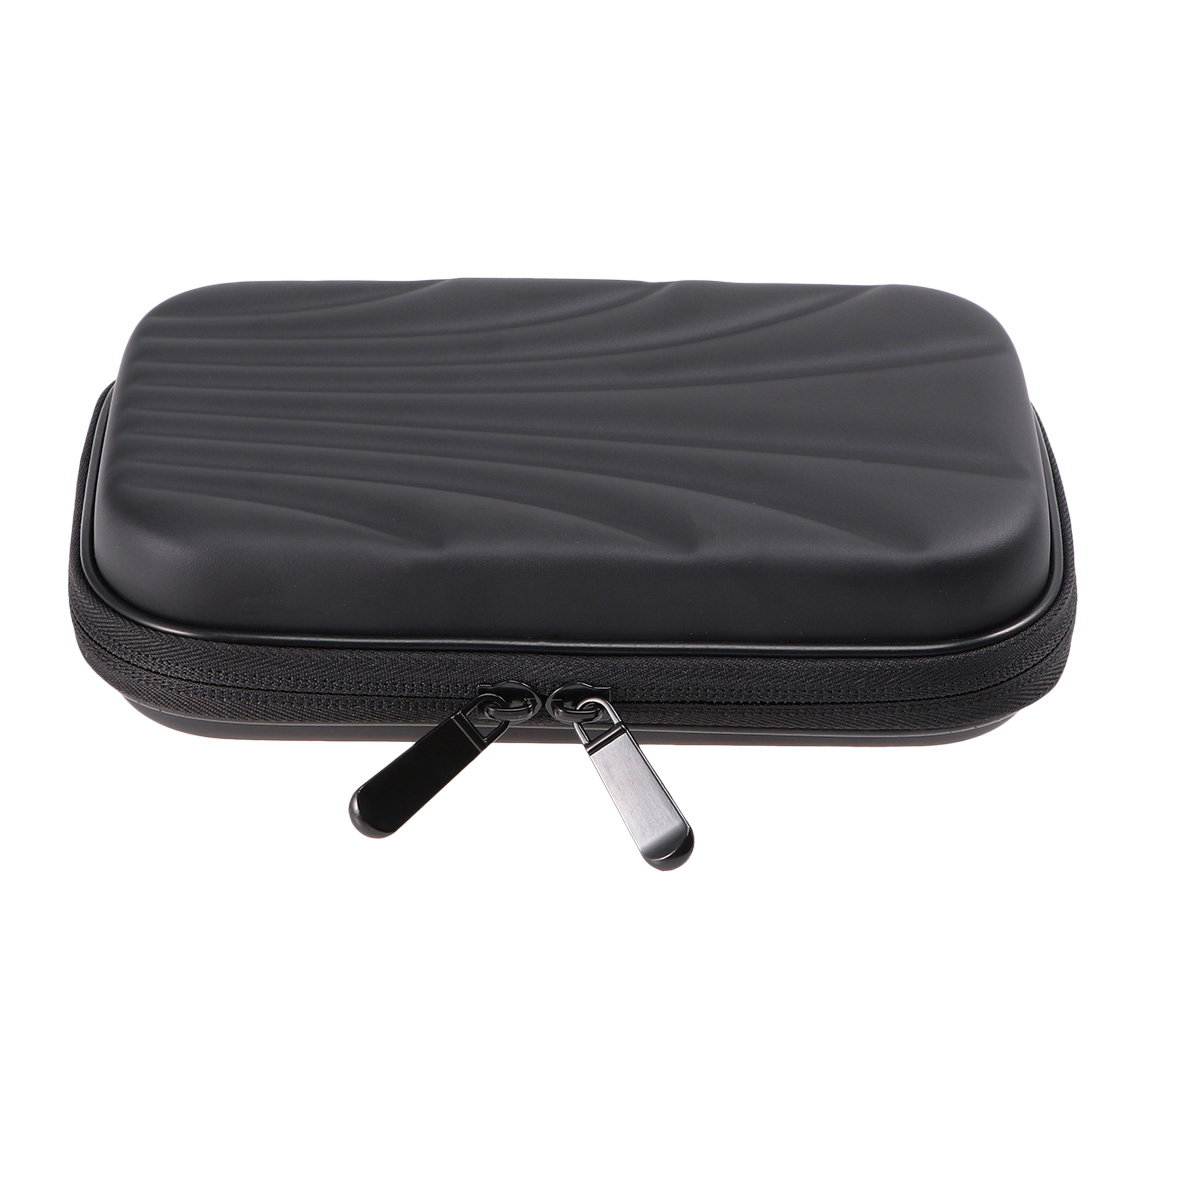 Practical Darts Carry Case Portable Darts Carrying Box Darts Storgae Bag Large Capacity Darts Container For Home Outdoor